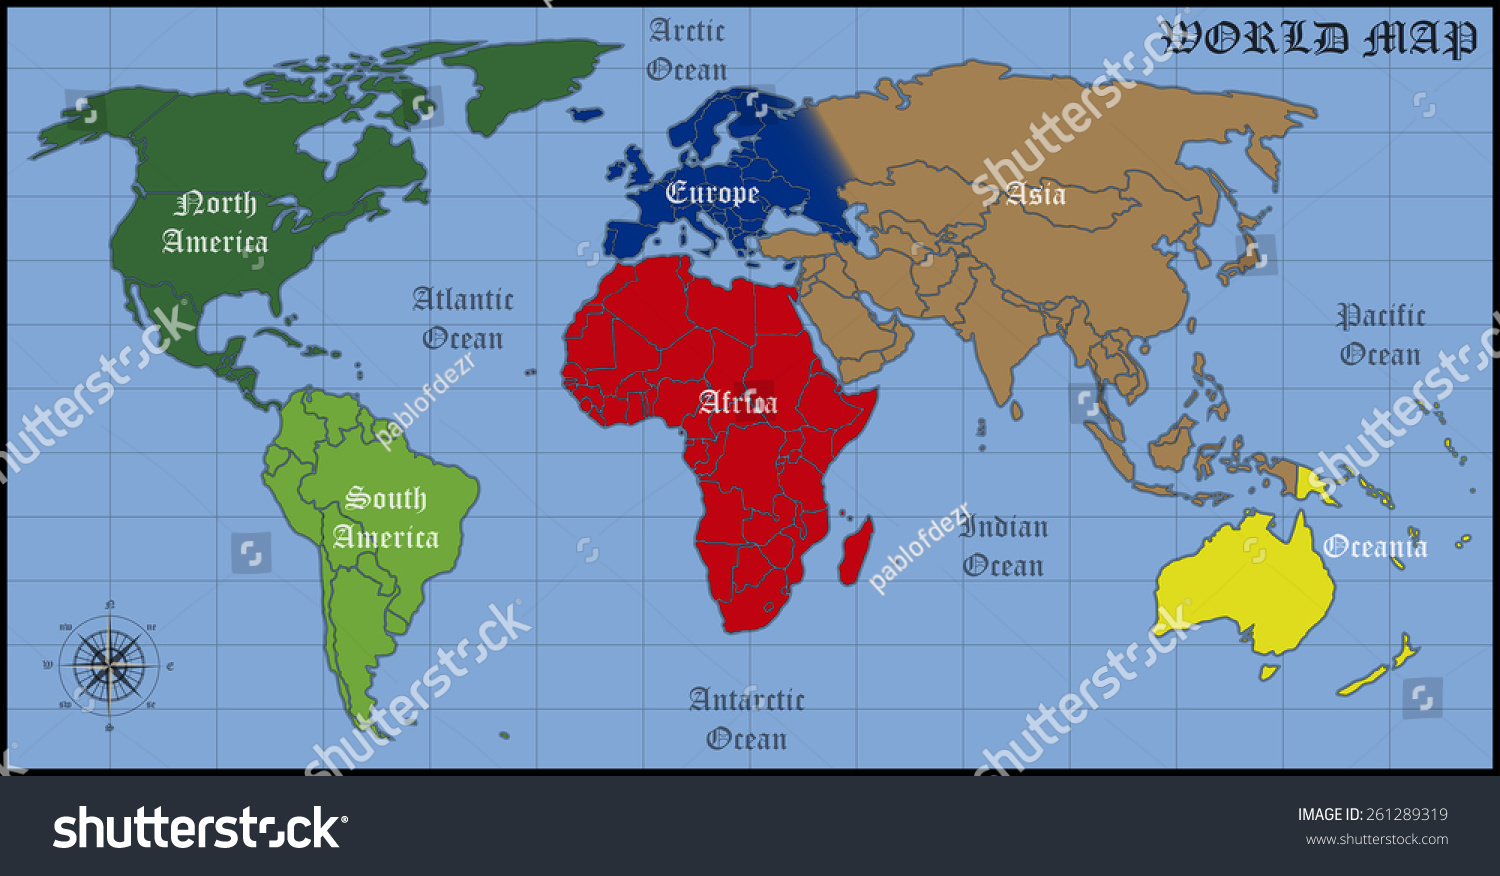 Map Of Continents And Oceans Of The World